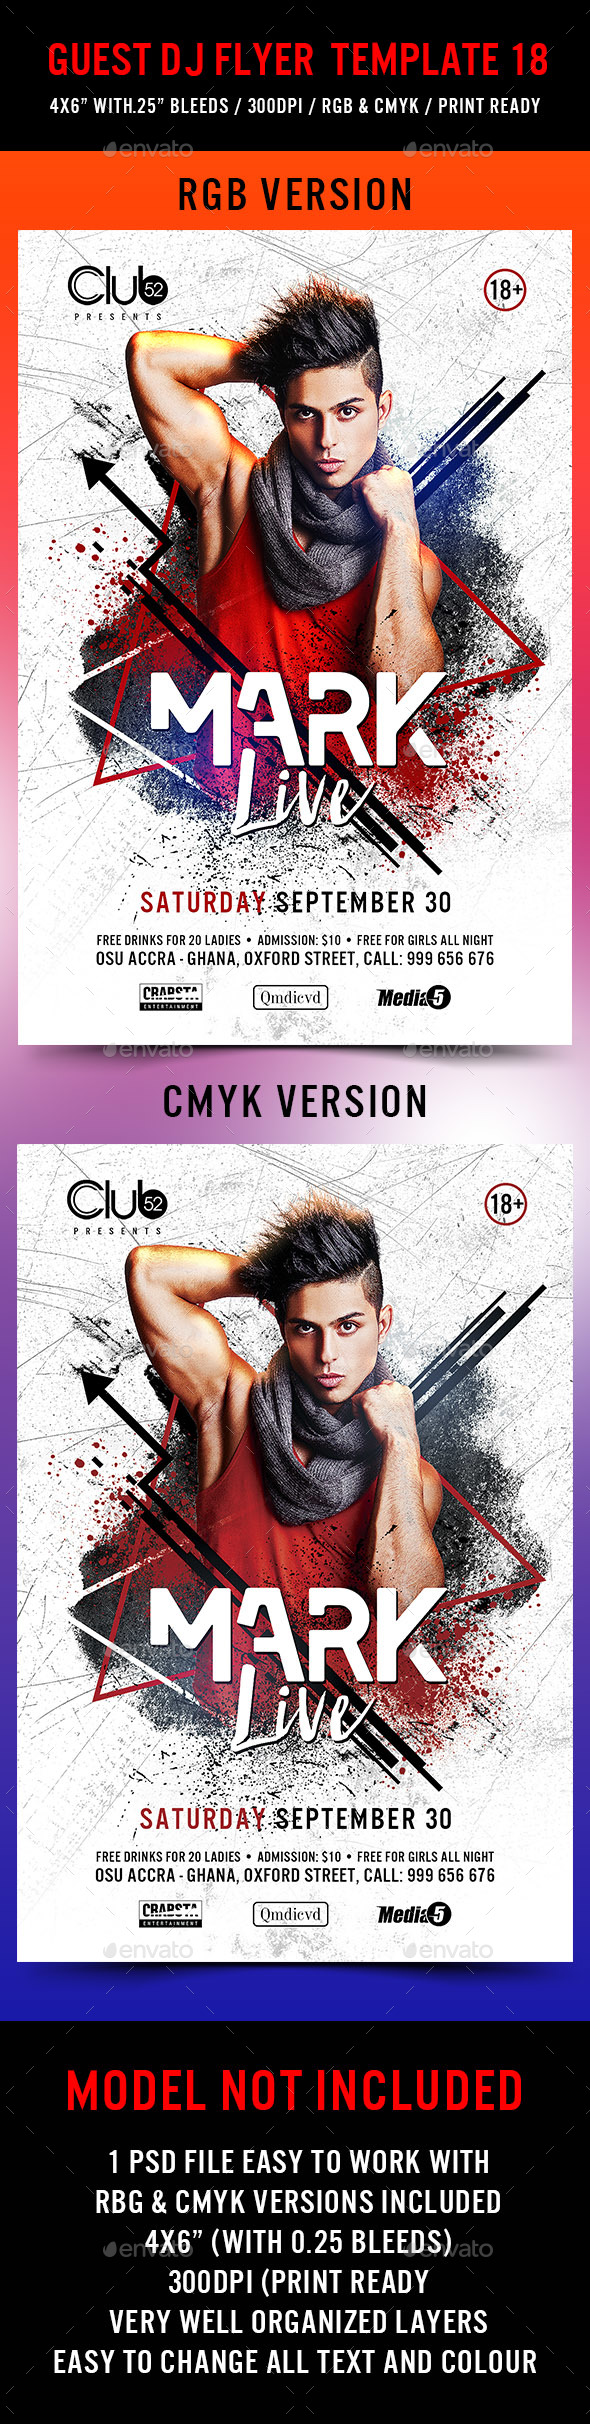 Guest DJ Flyer Template 18 - Clubs & Parties Events